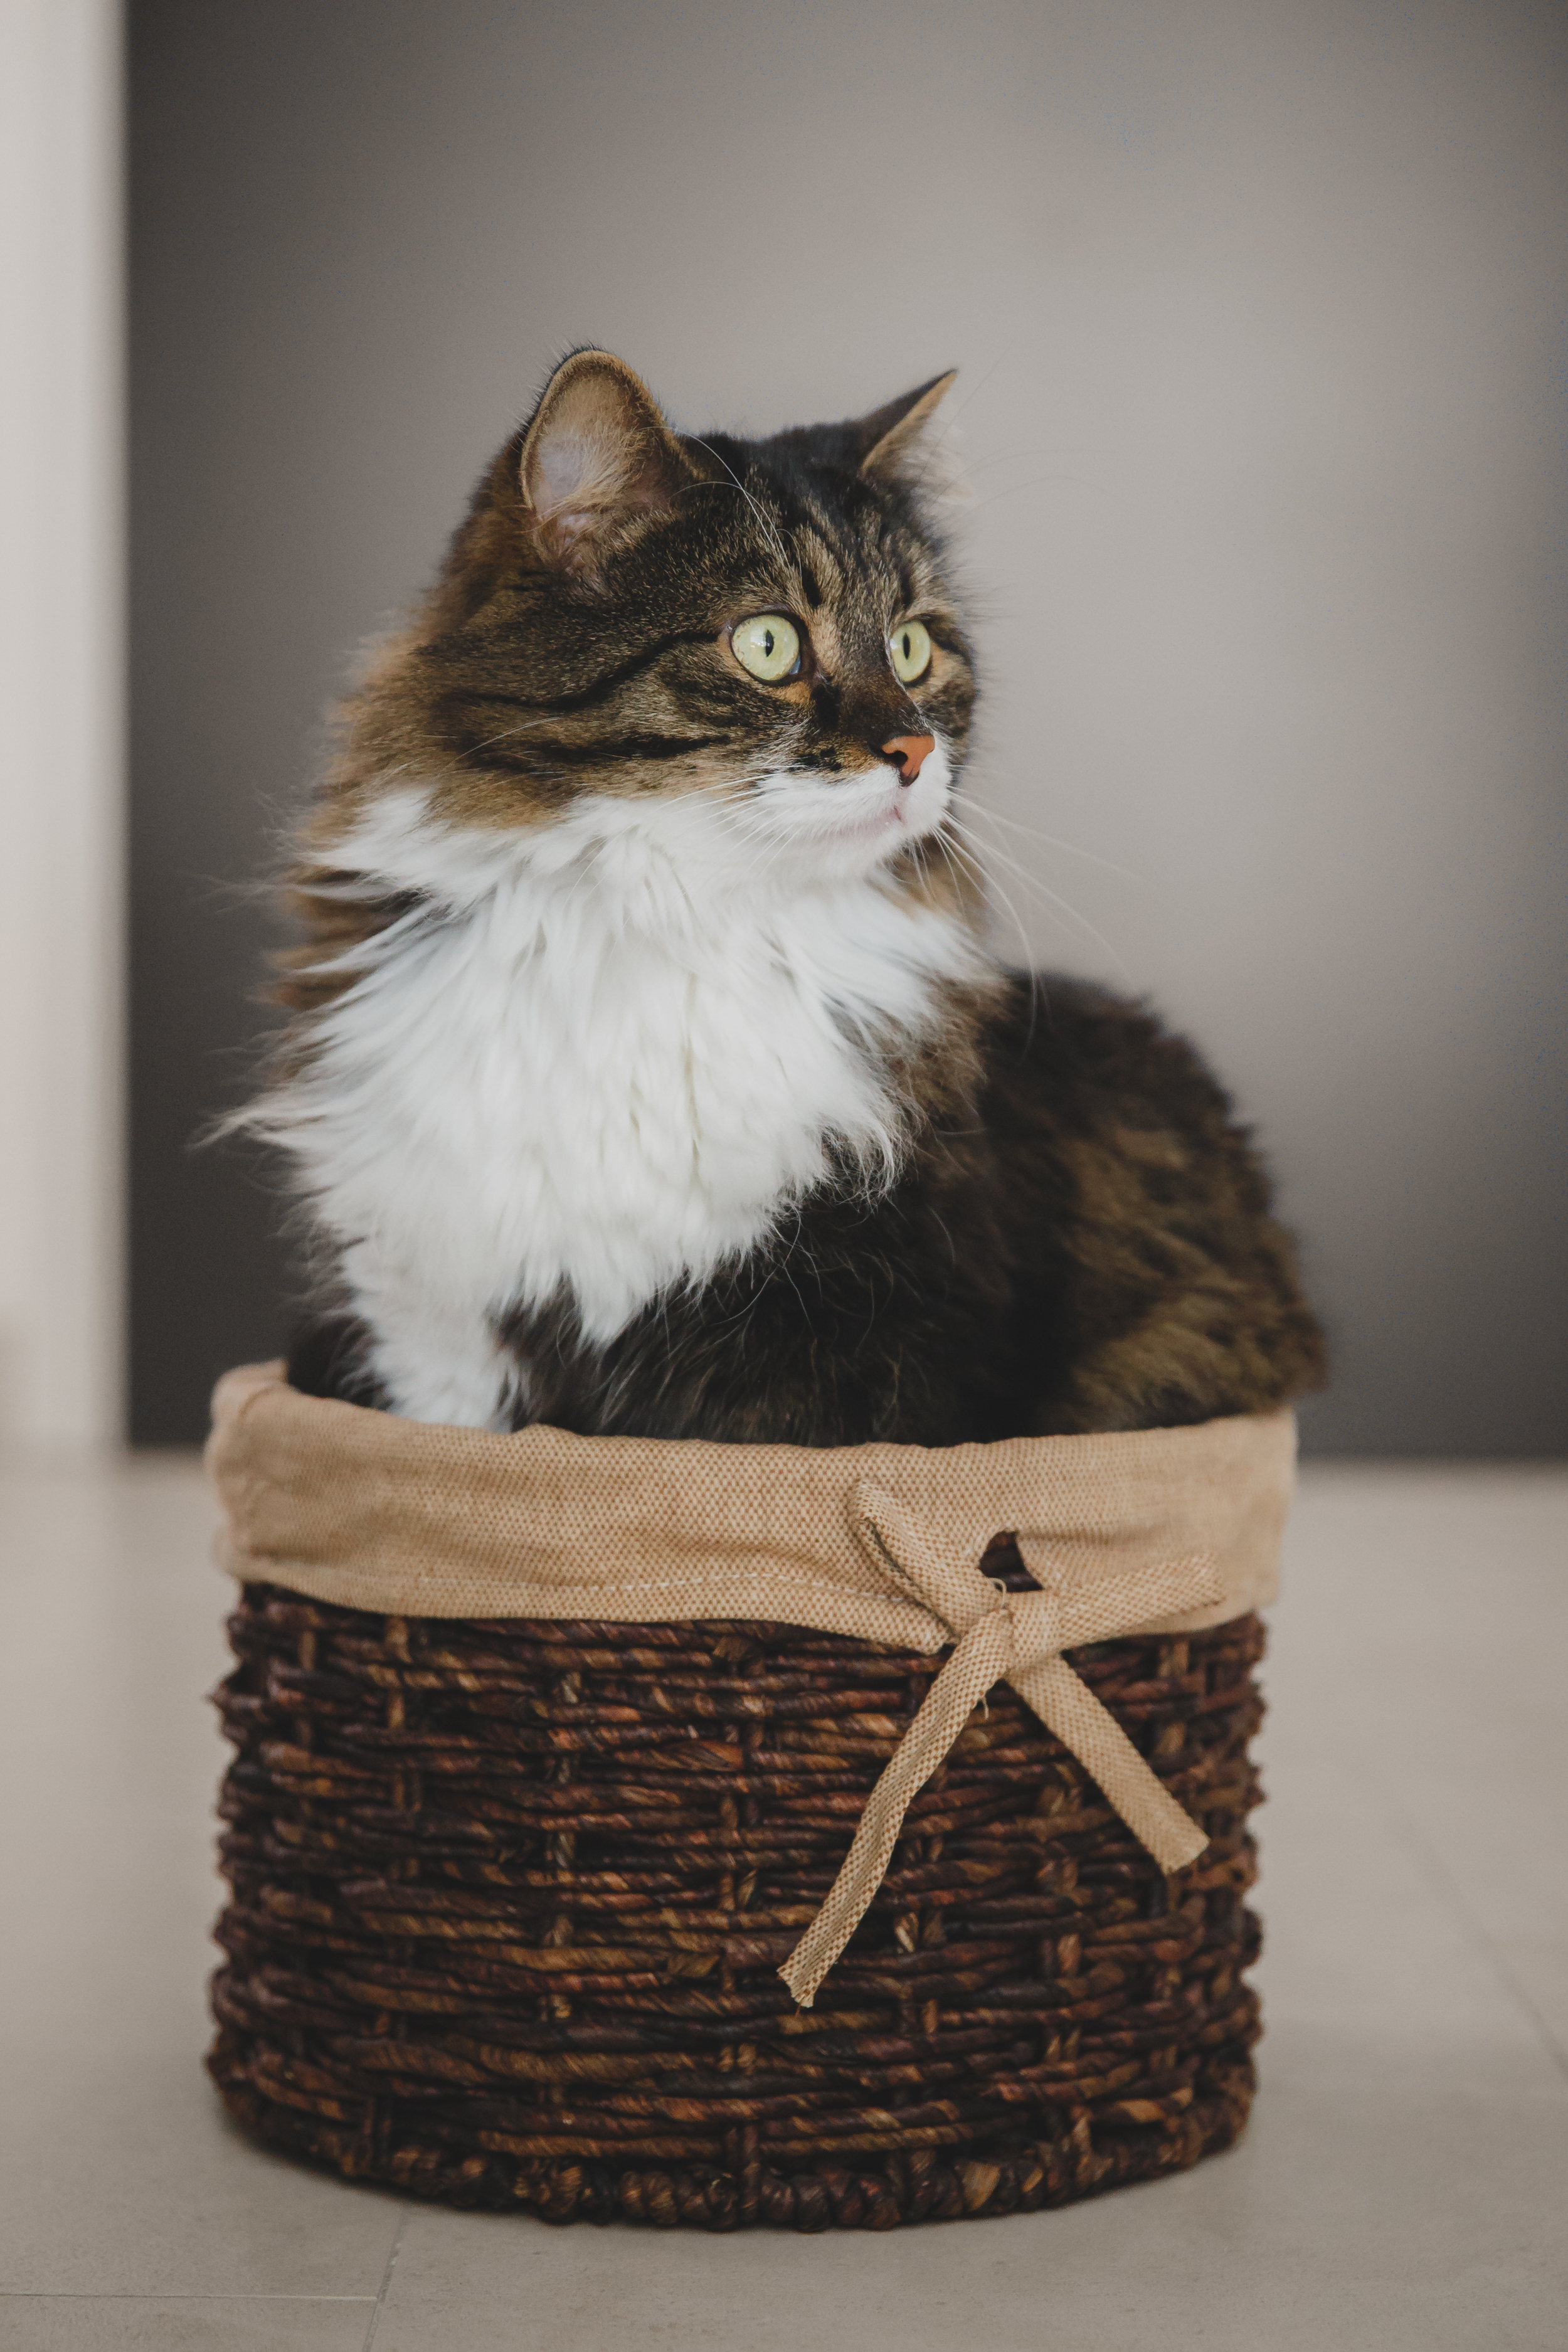 Fluffy, in all his baskety magnificence.